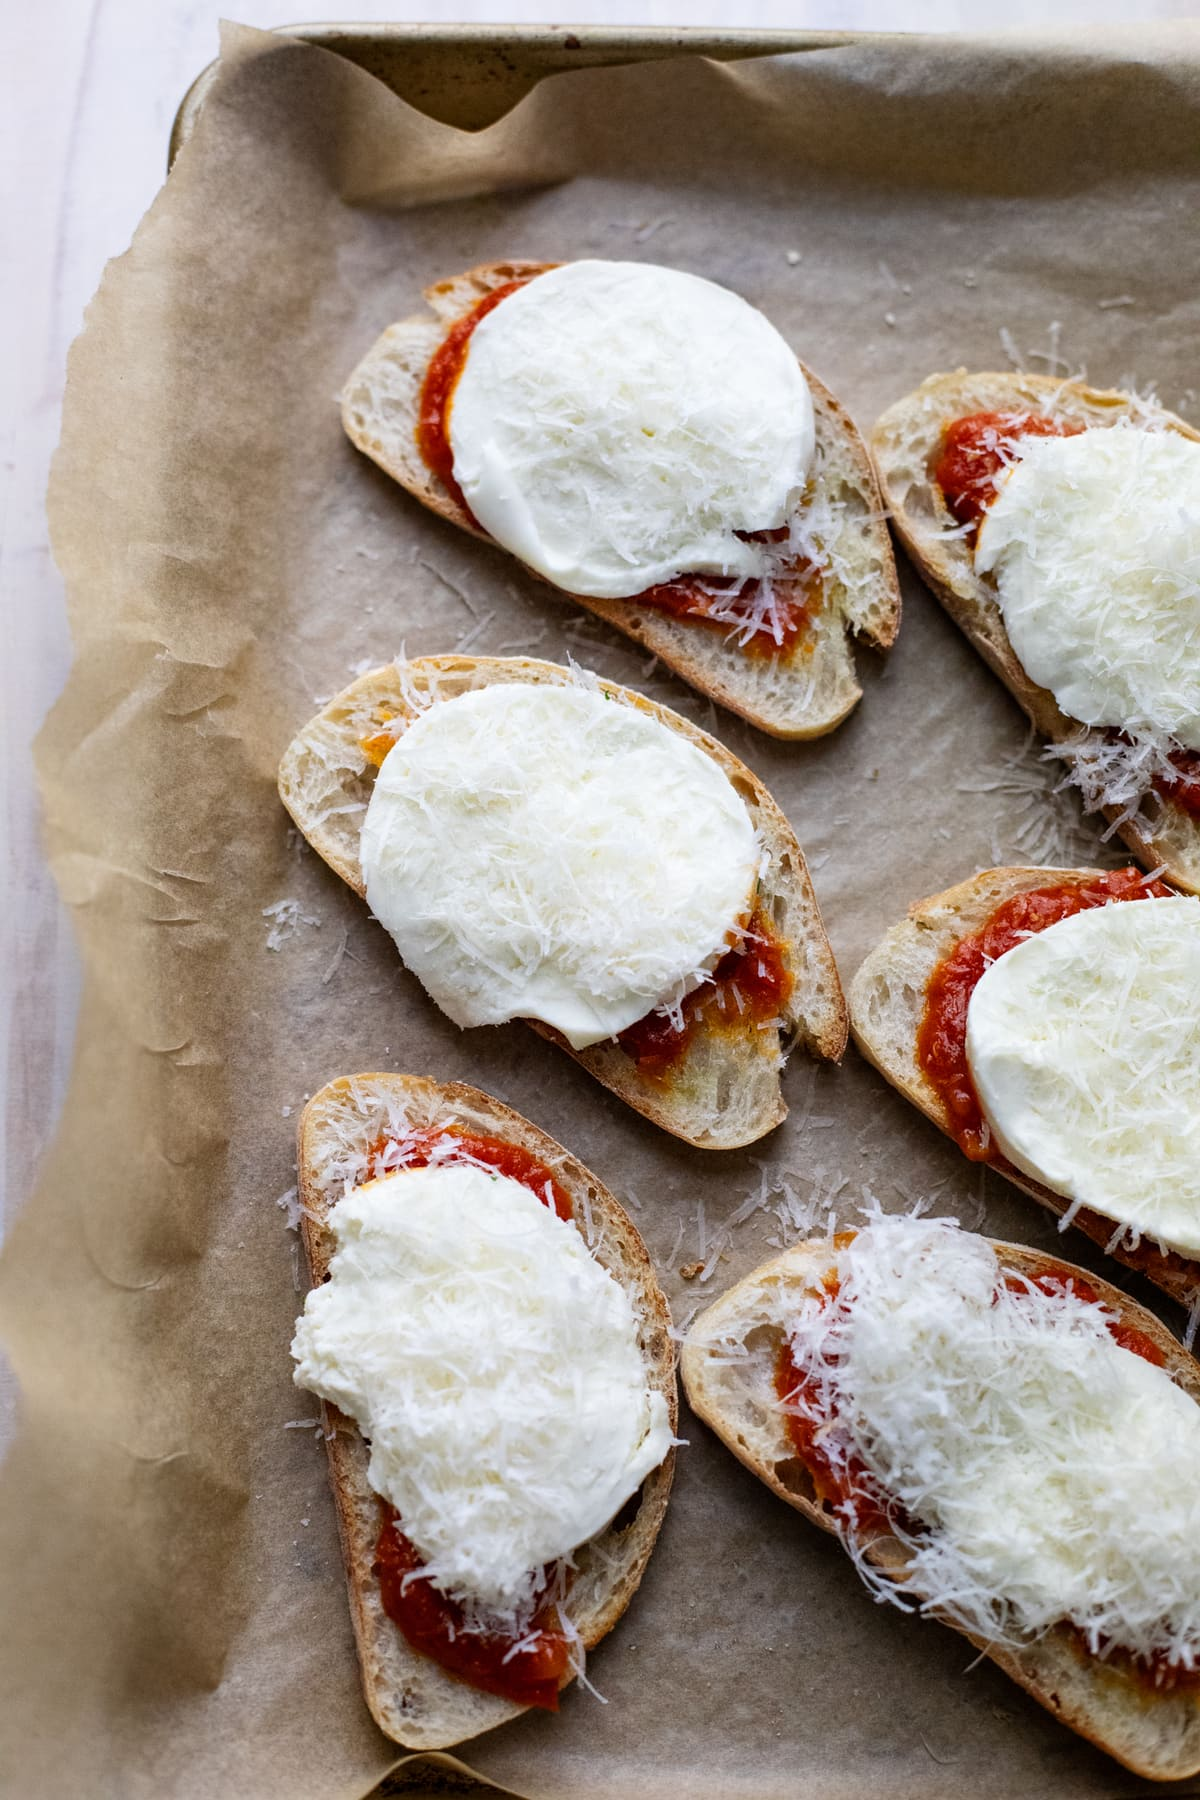 crostini pizzas arranged on pan lined with parchment paper.